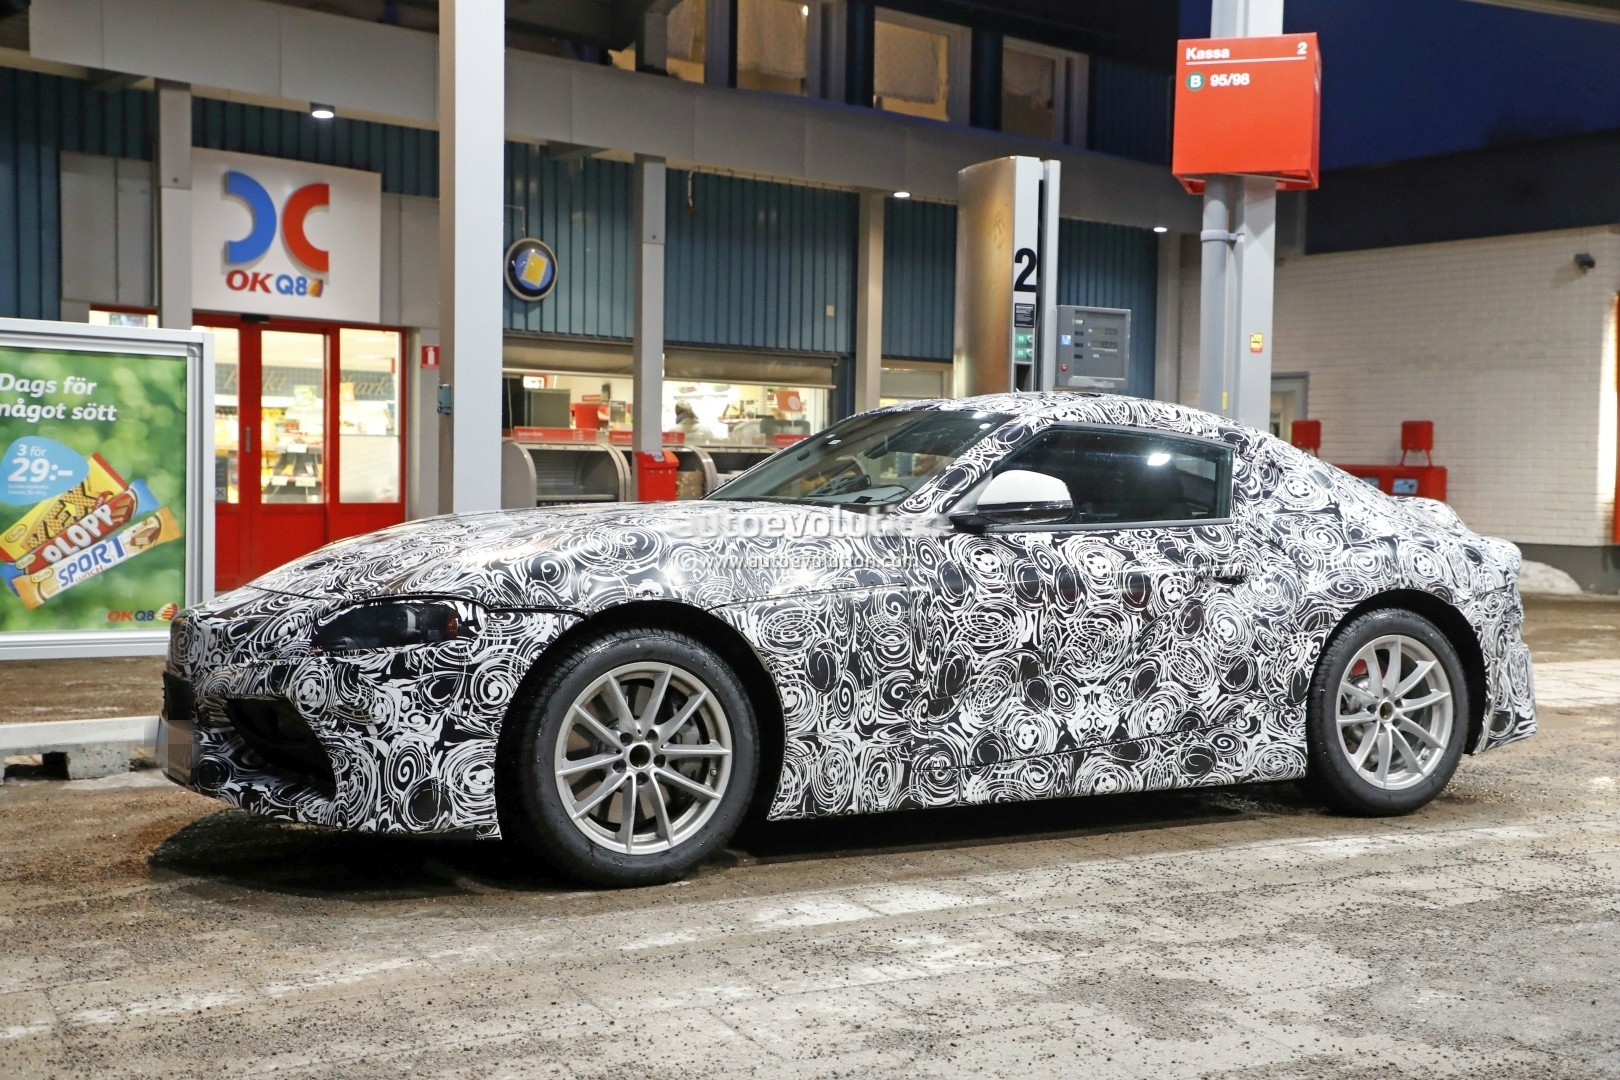 New Toyota Supra Spied Up Close While Visiting A Gas